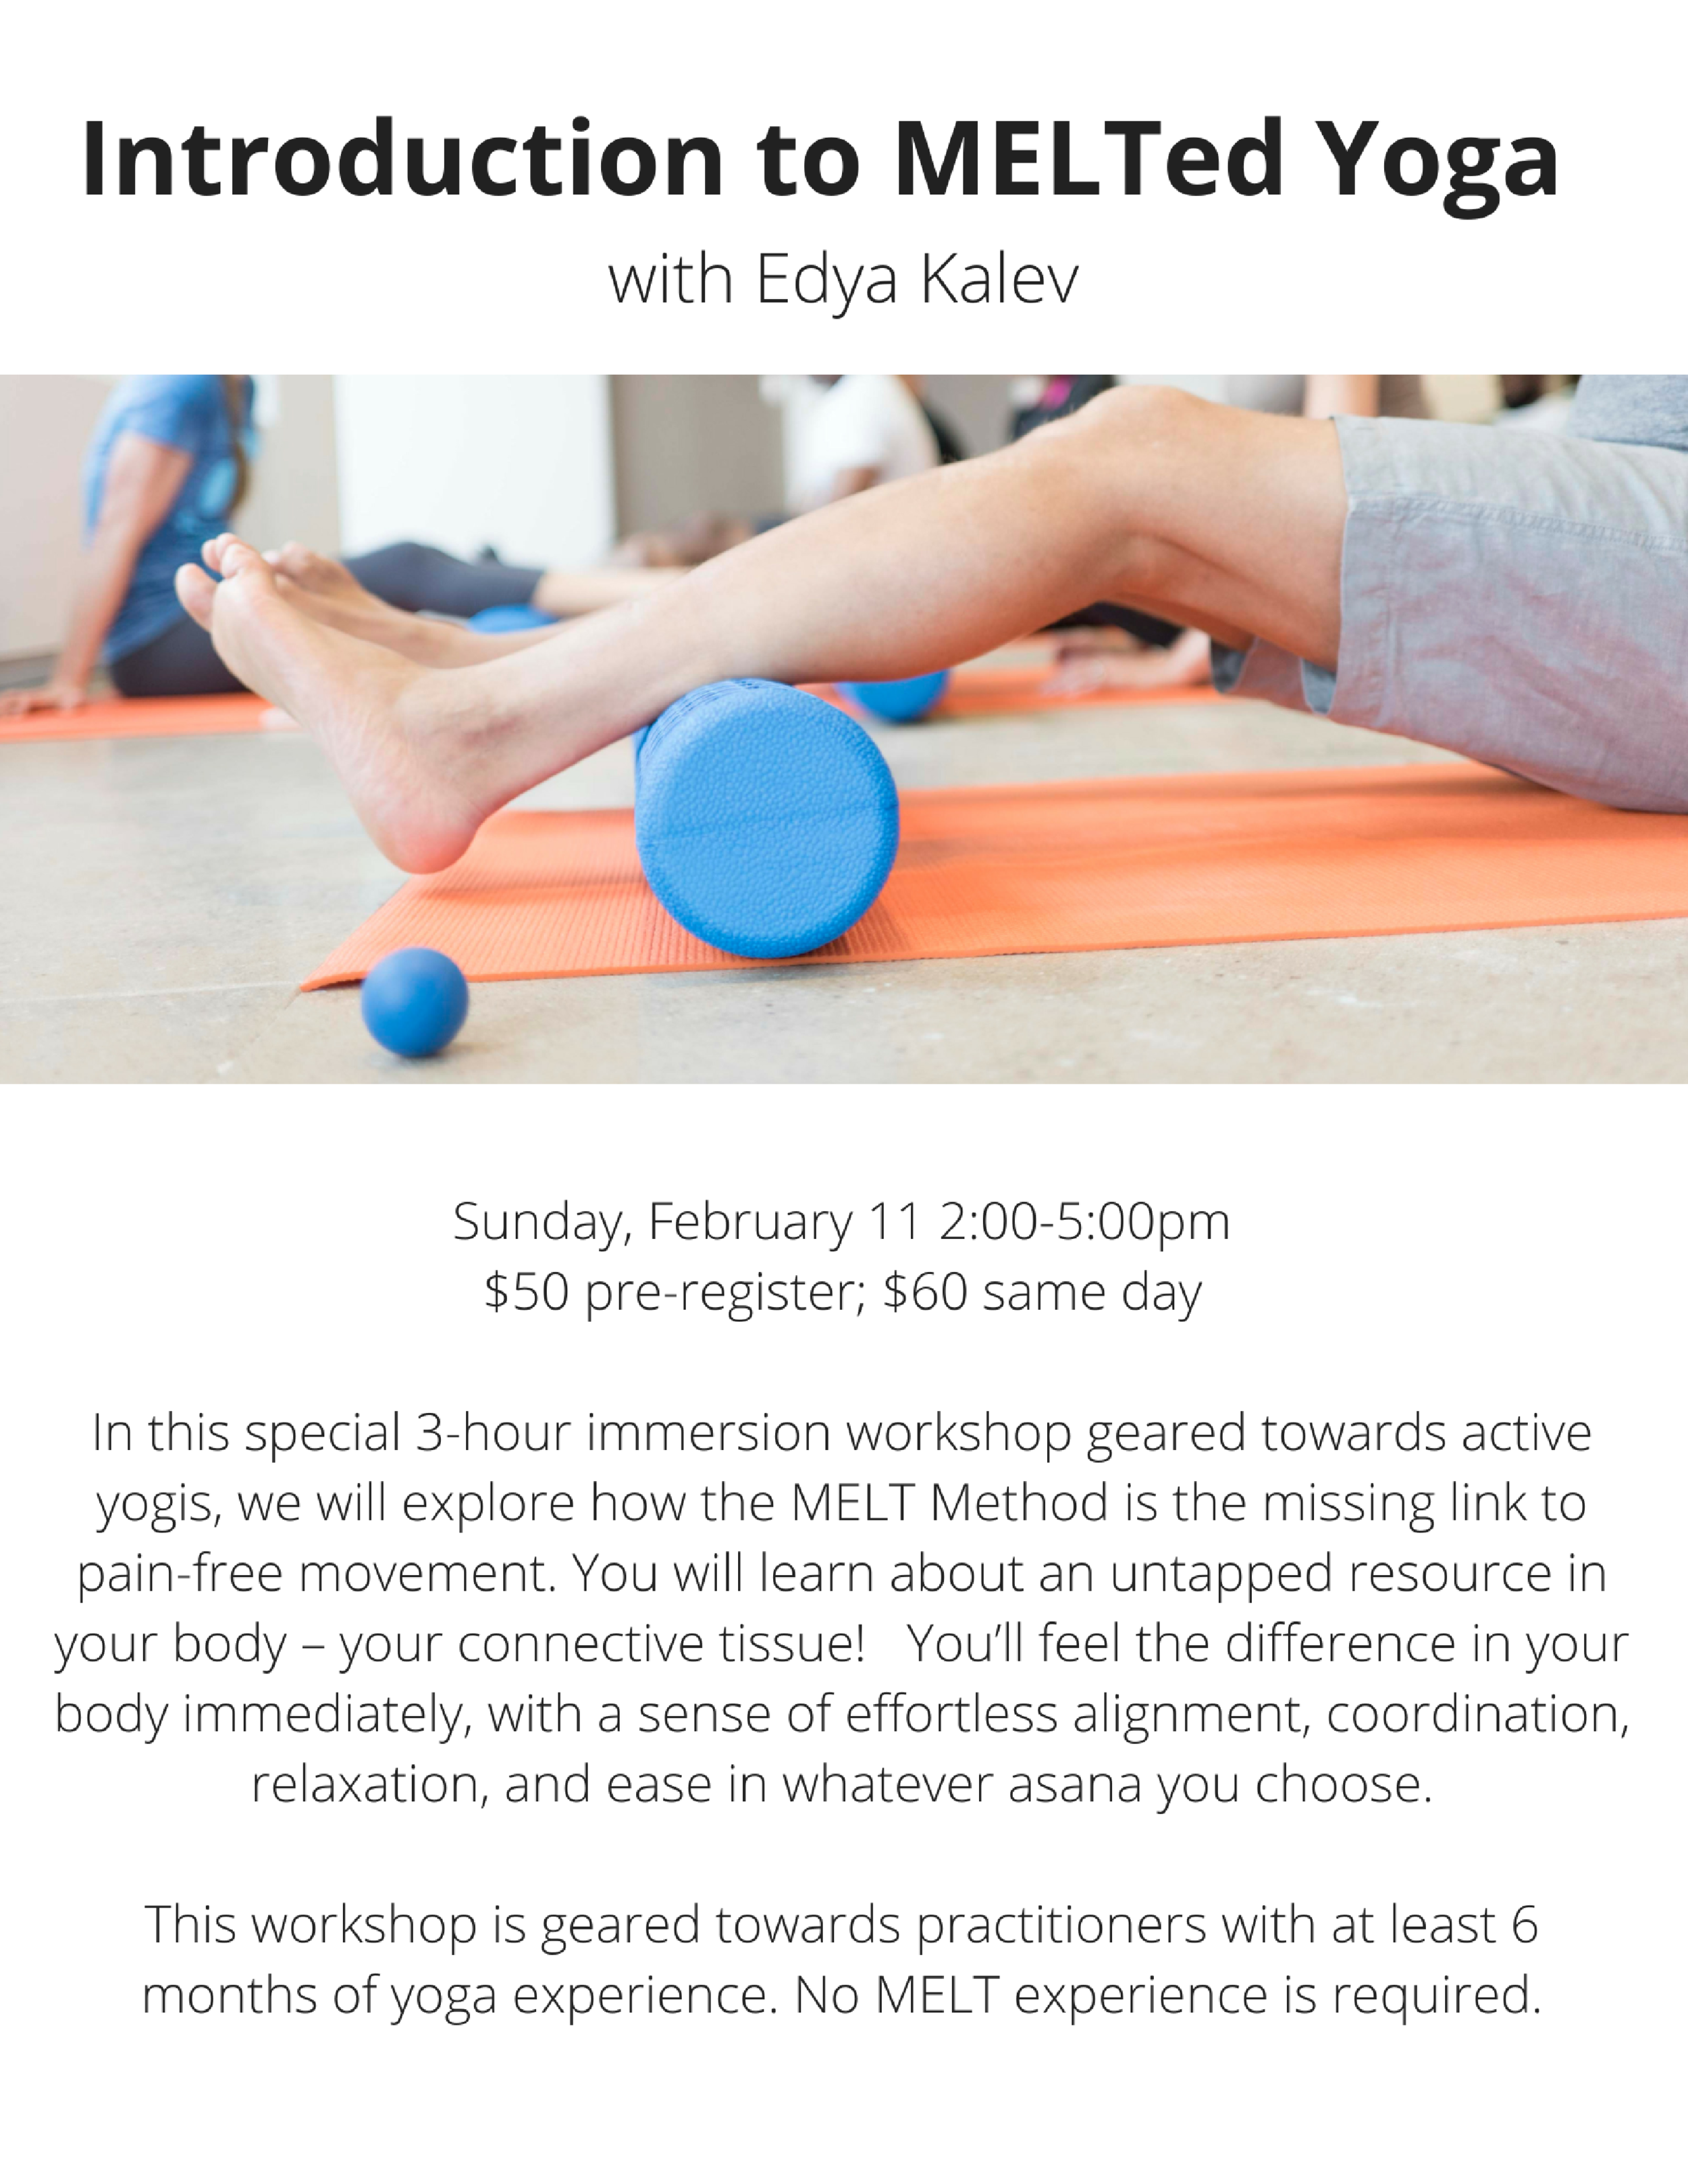 Introduction to MELTed Yoga with Edya (1).png